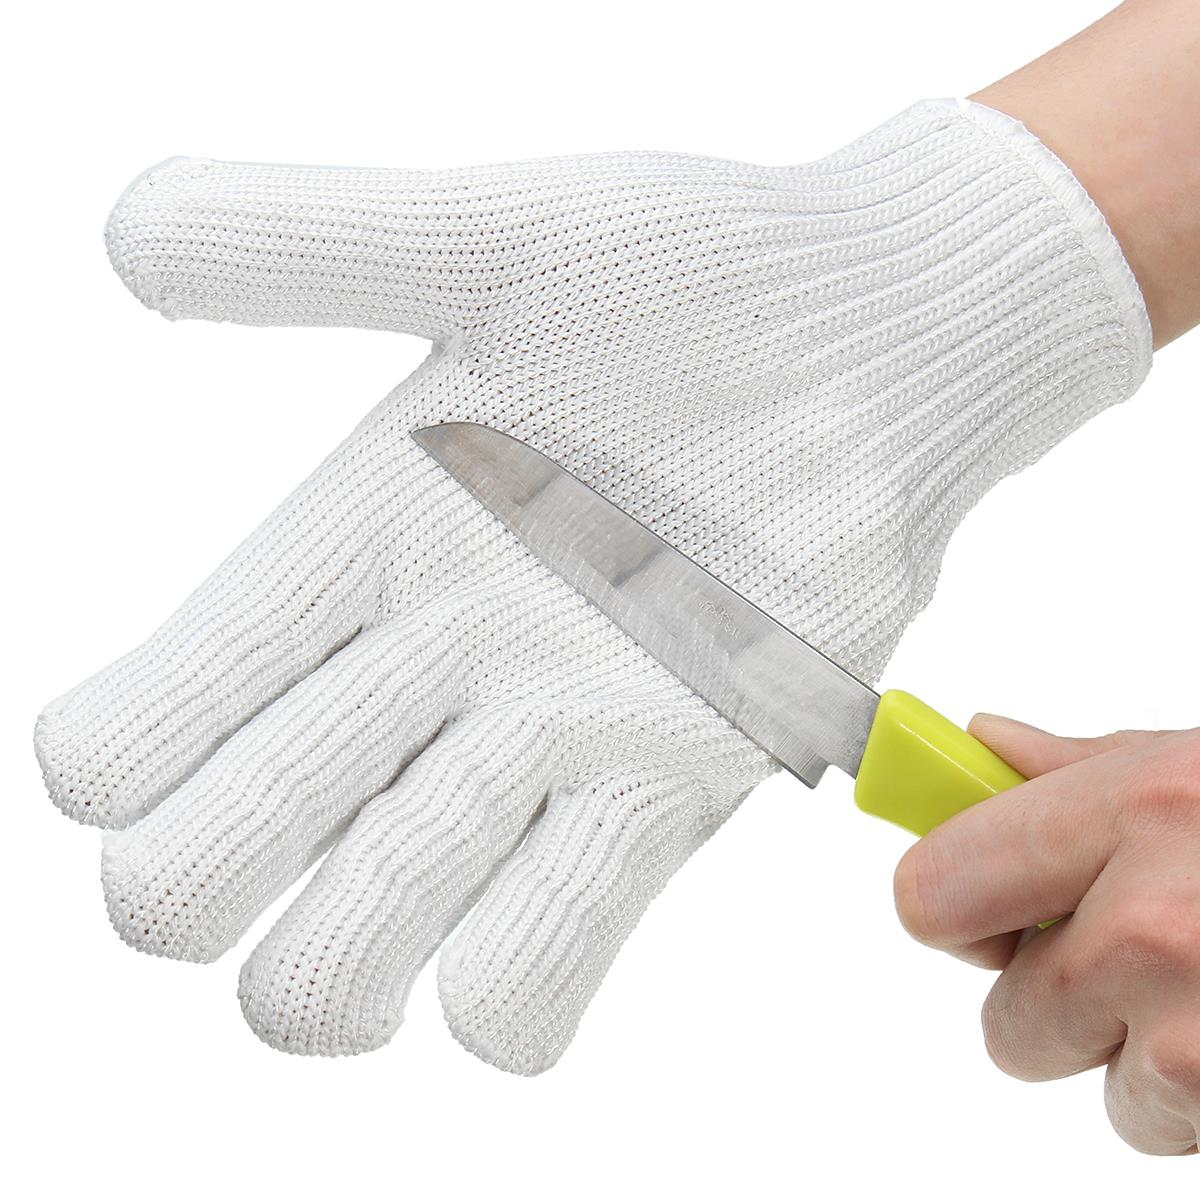 White butchers apron